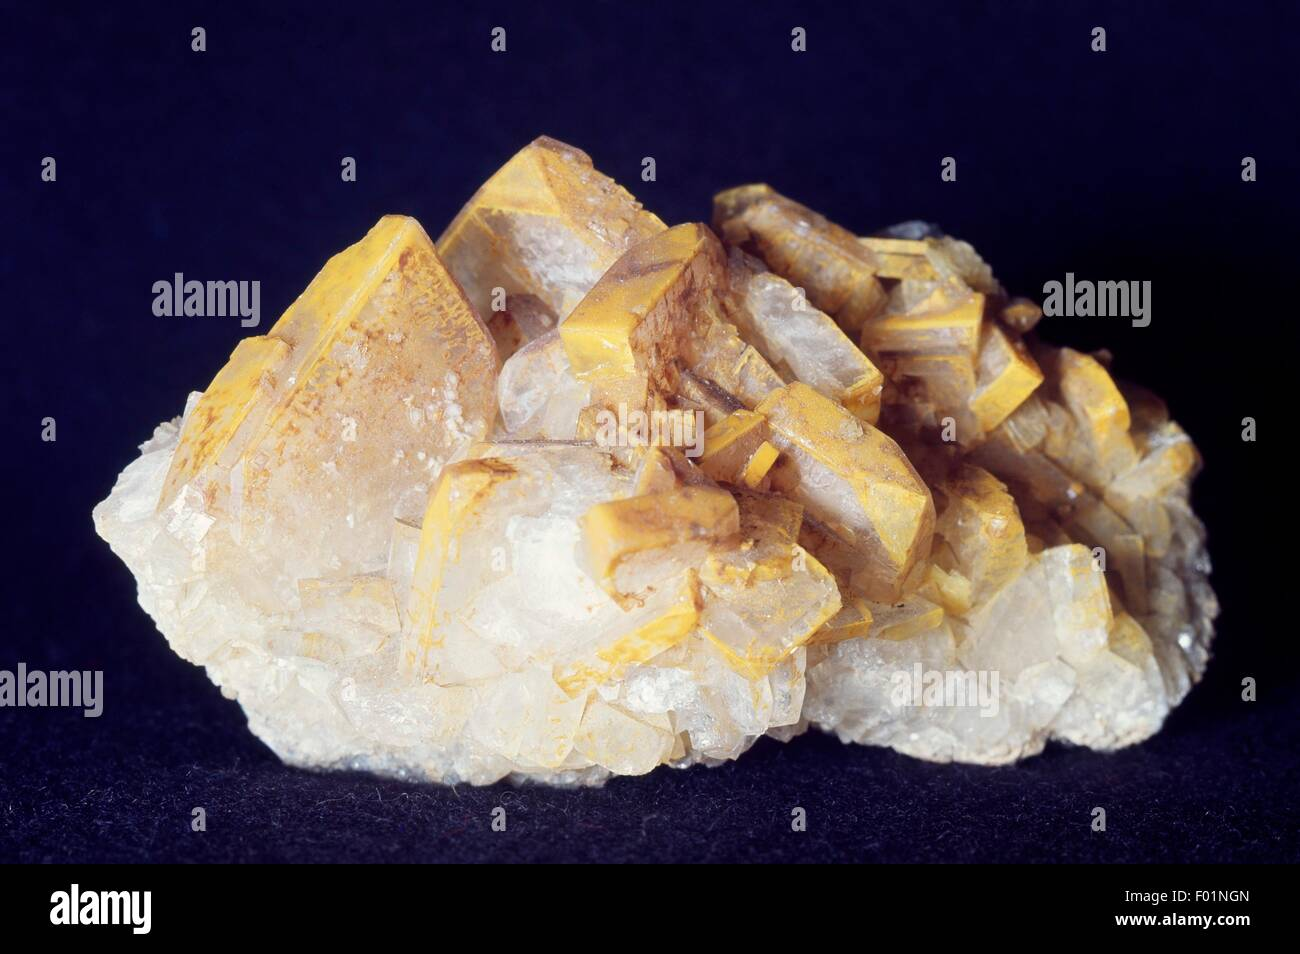 Druse of Baryte or Barite, sulphate. - Stock Image